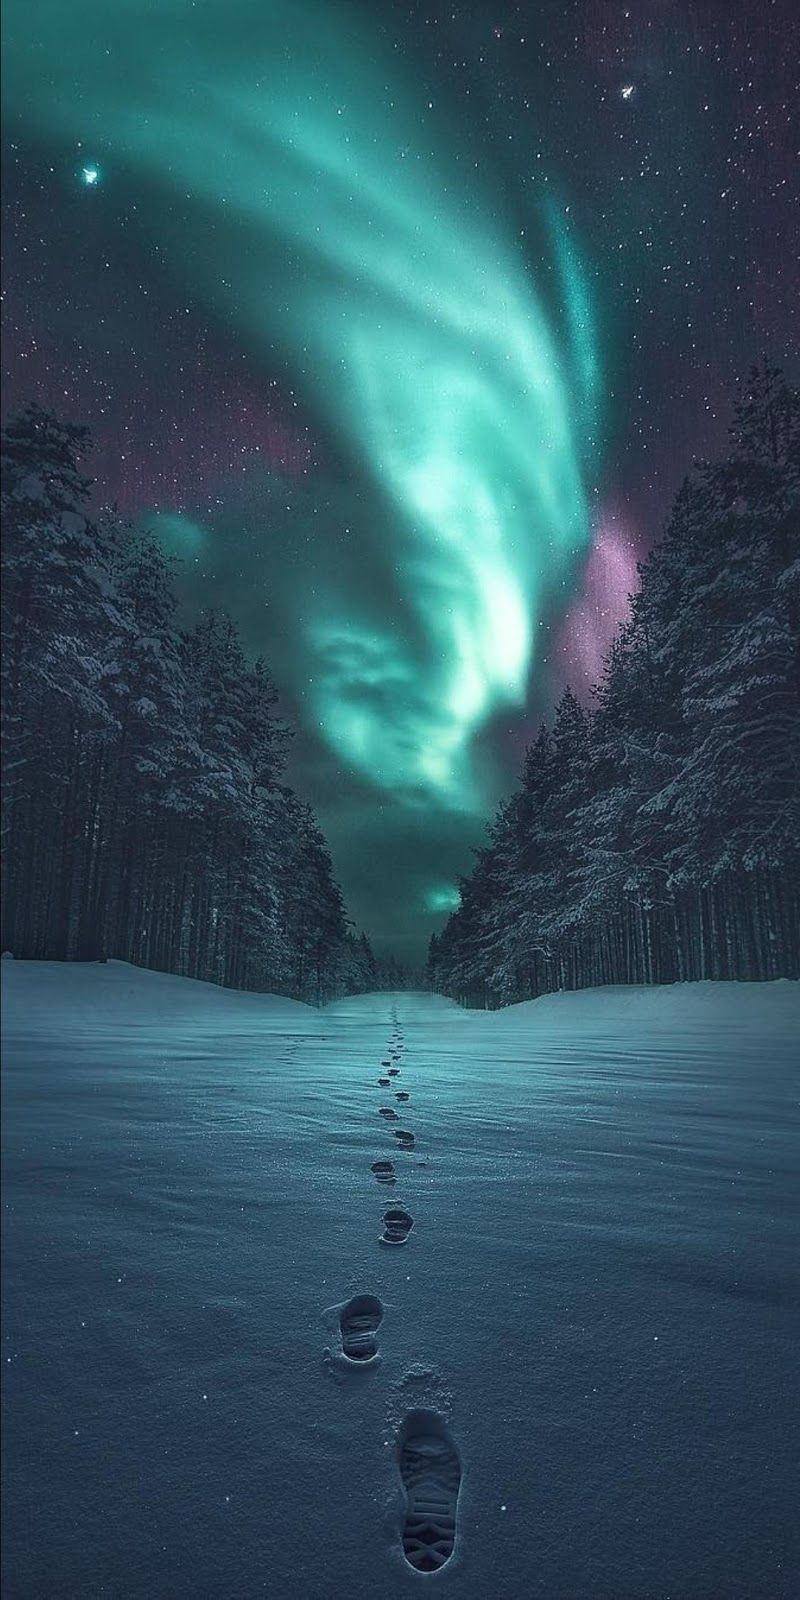 Footprint In The Snow Wallpaper Iphone Wallpaper Sky Nature Photography Night Landscape